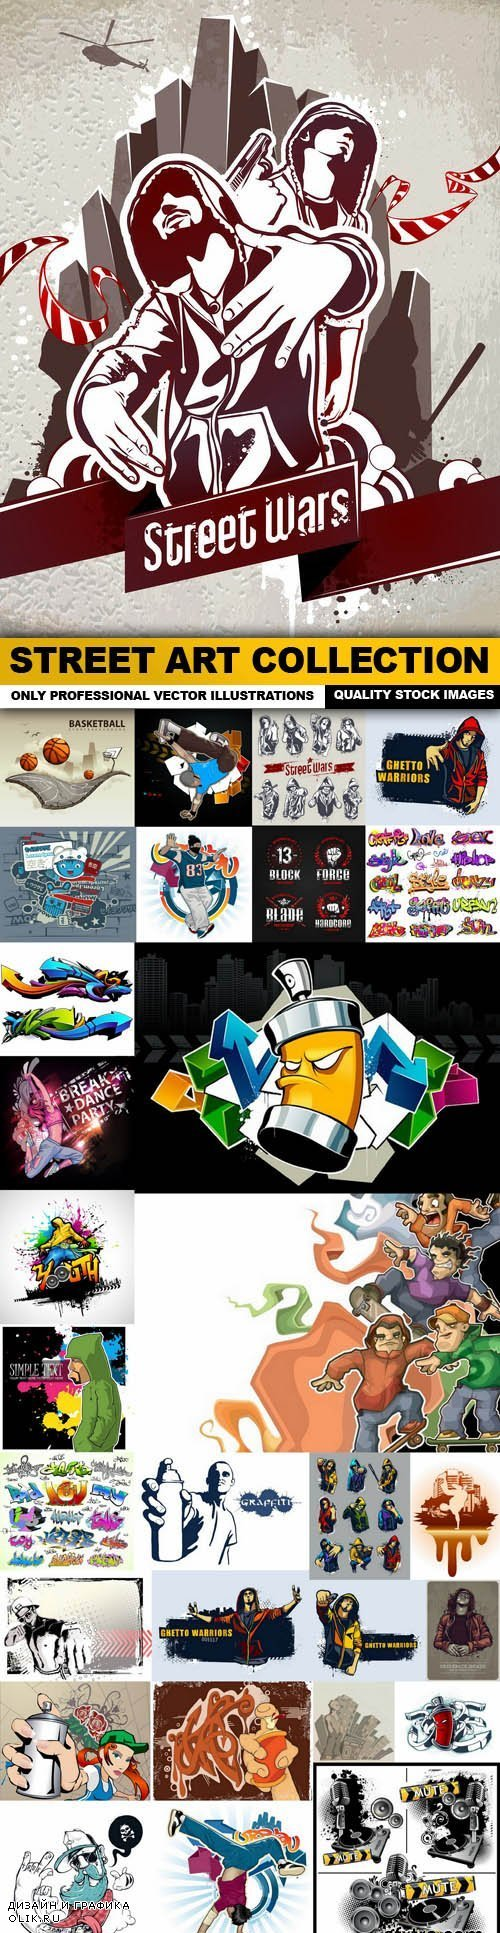 Street Art Collection - 30 Vector